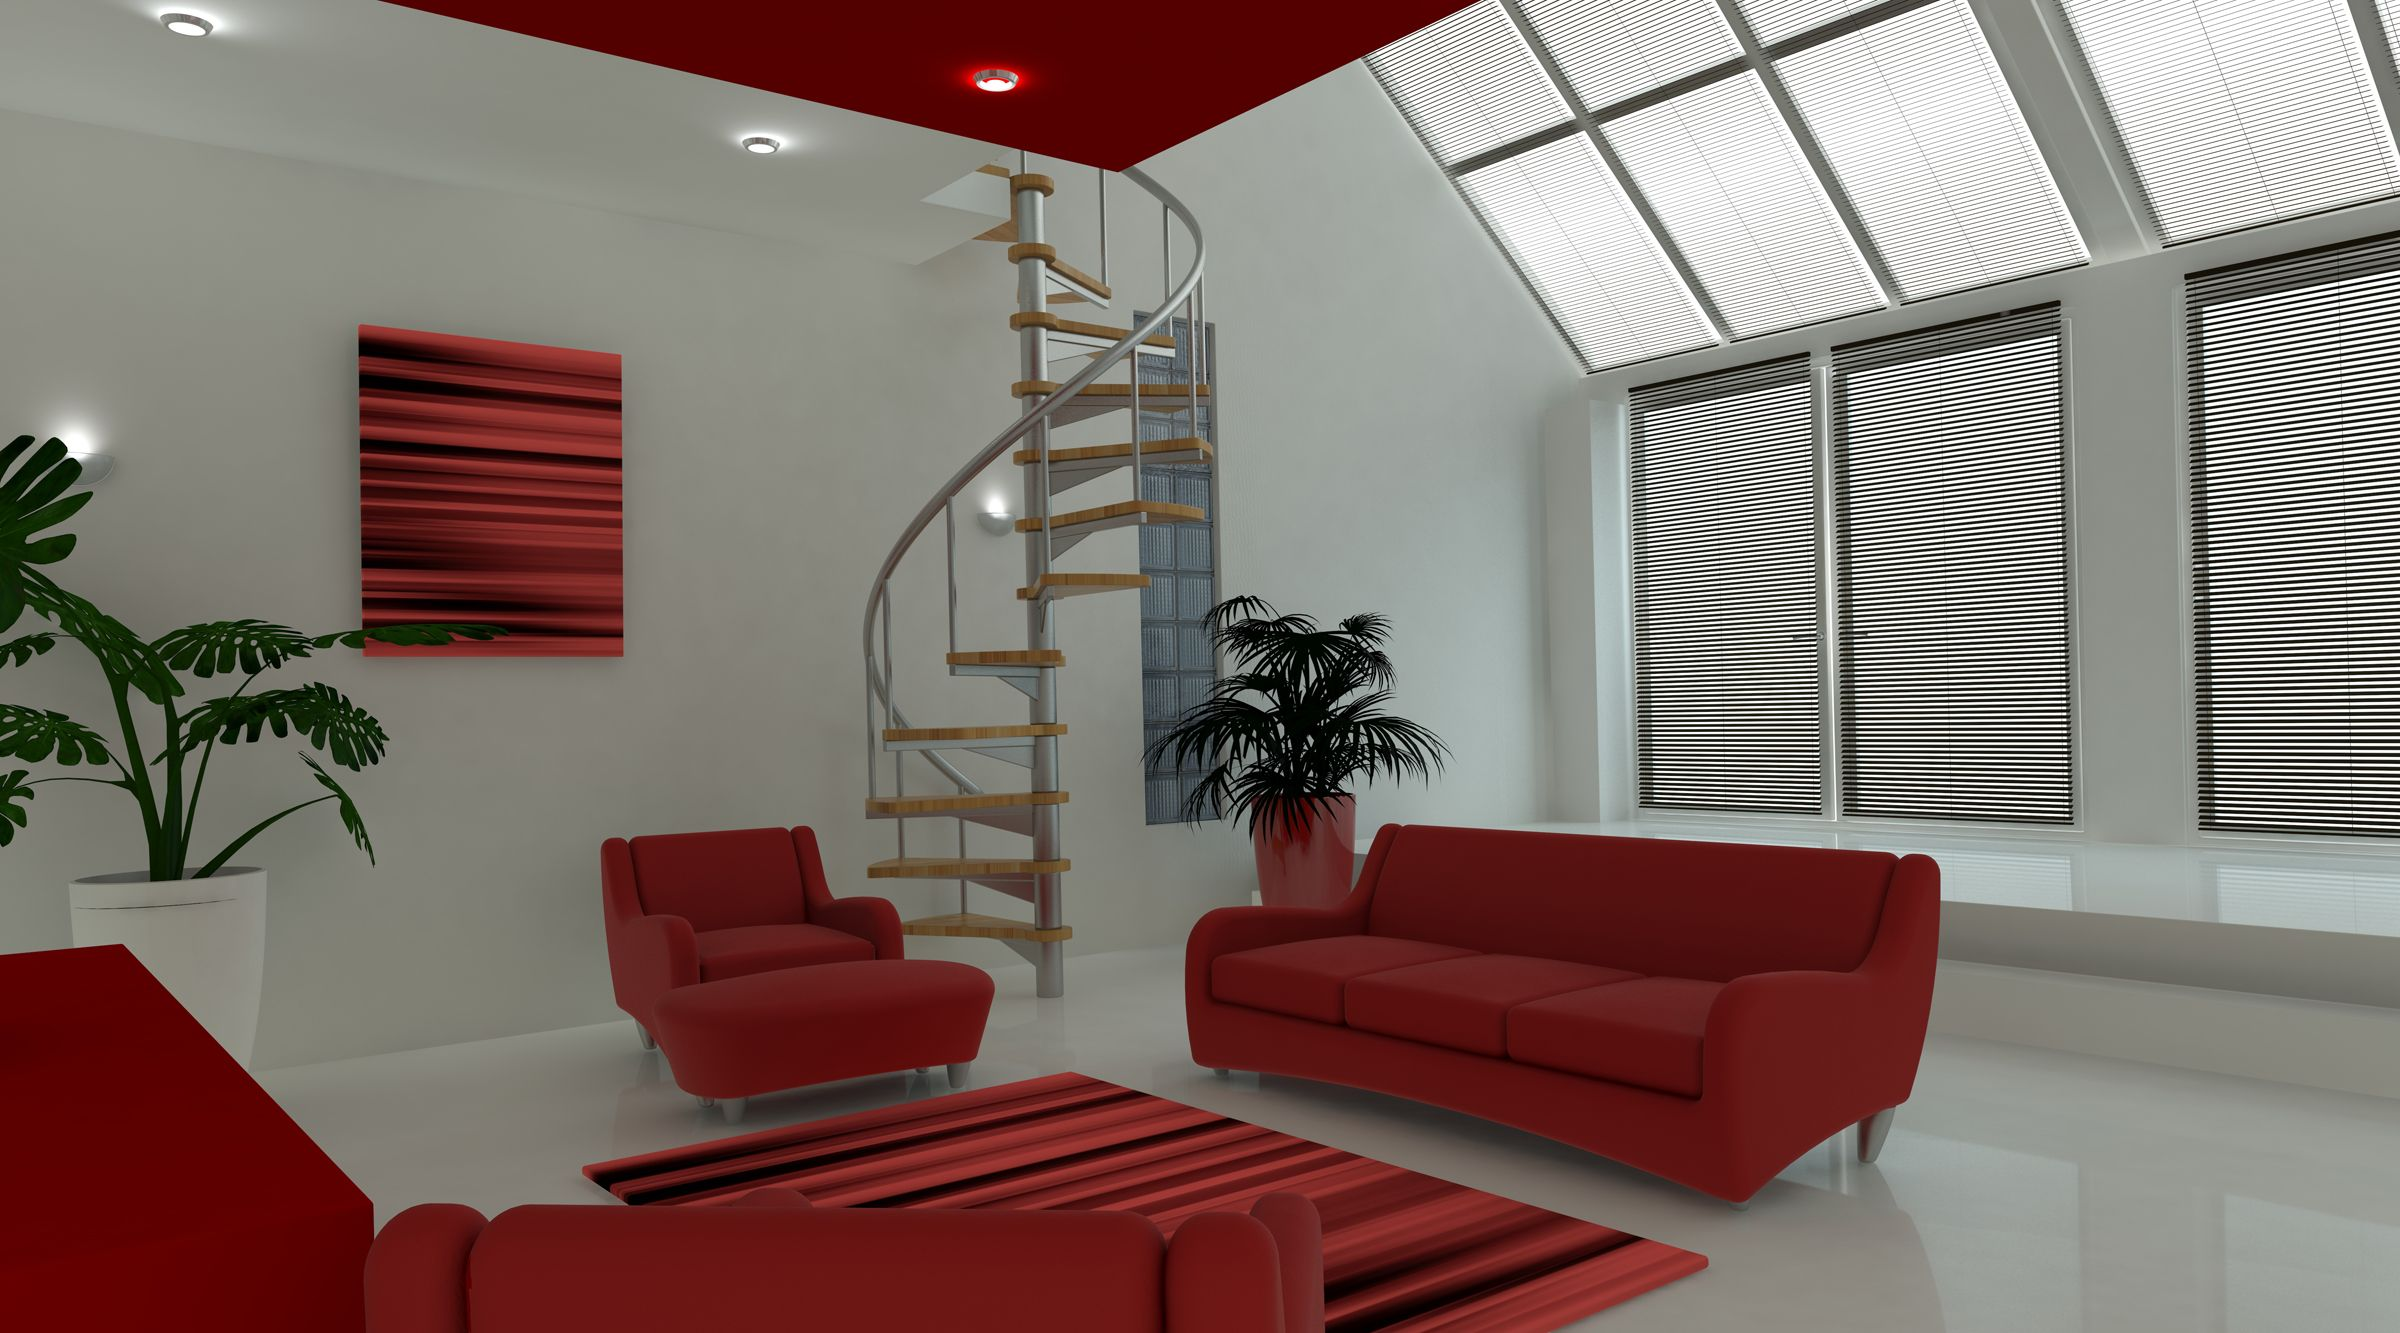 Living Room Design App Unique Room Planner Free Online Design Paint Not Architecture Virtual Design Ideas